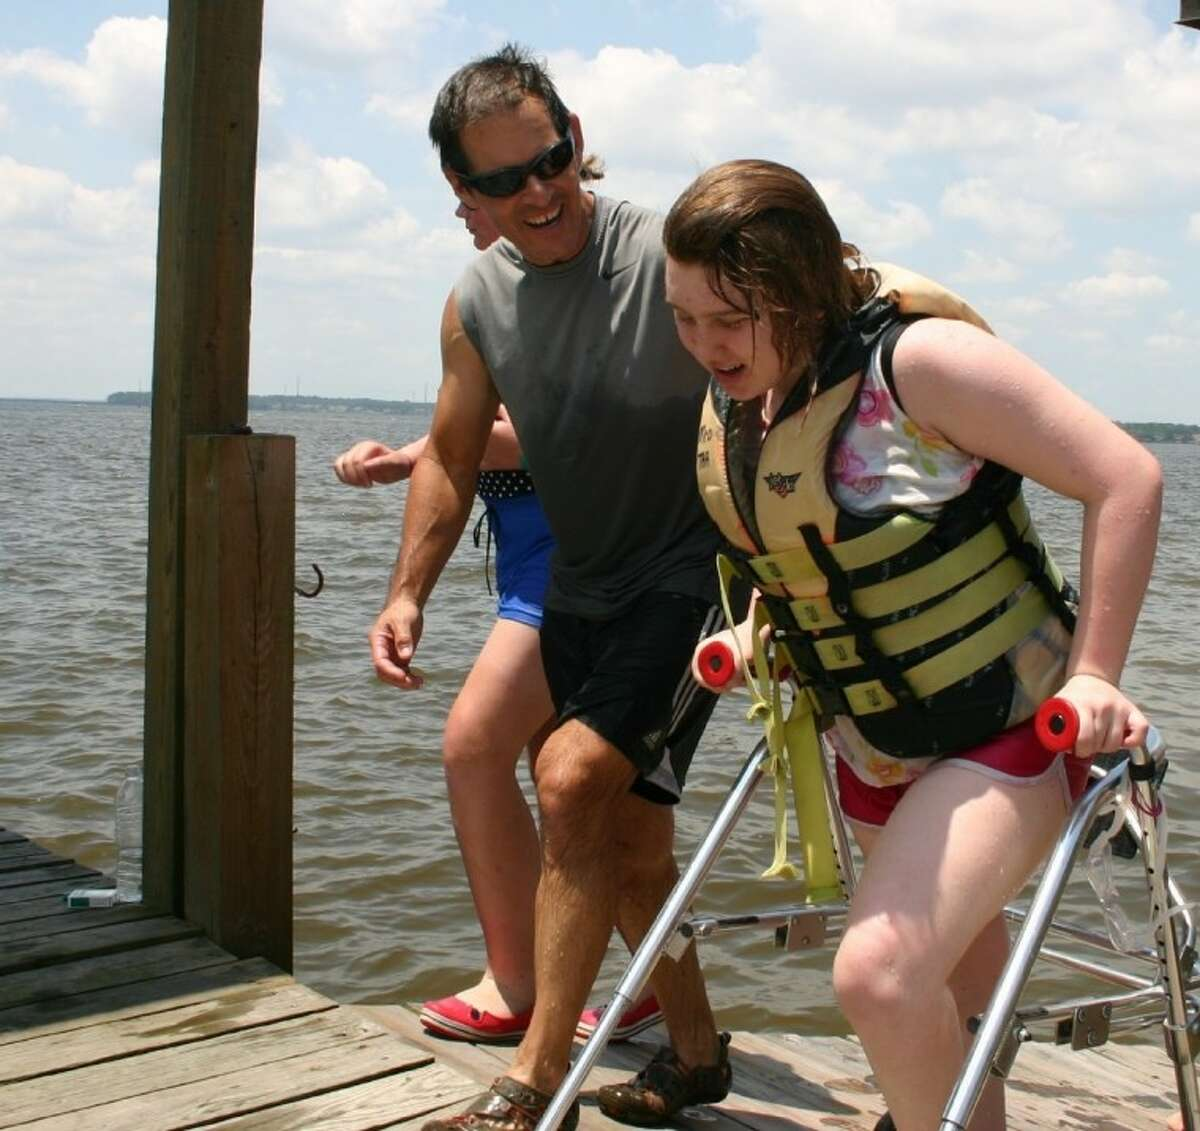 Patrick Fries asks his 14-year-old daughter, Claire, how her water skiing on Lake Houston went June 2 at Texas Adaptive Aquatics in Huffman. Claire has cerebral palsy.